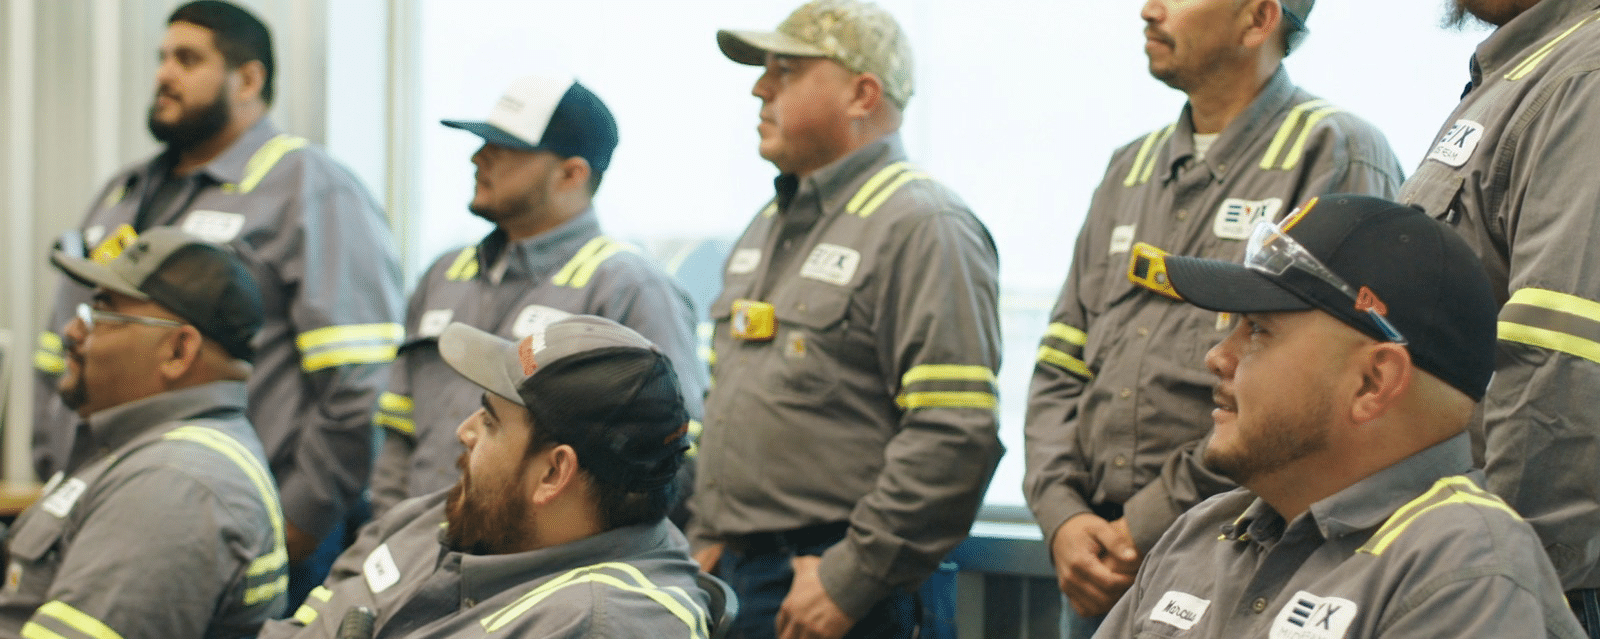 Eight workers listening to a speaker during a company meeting.